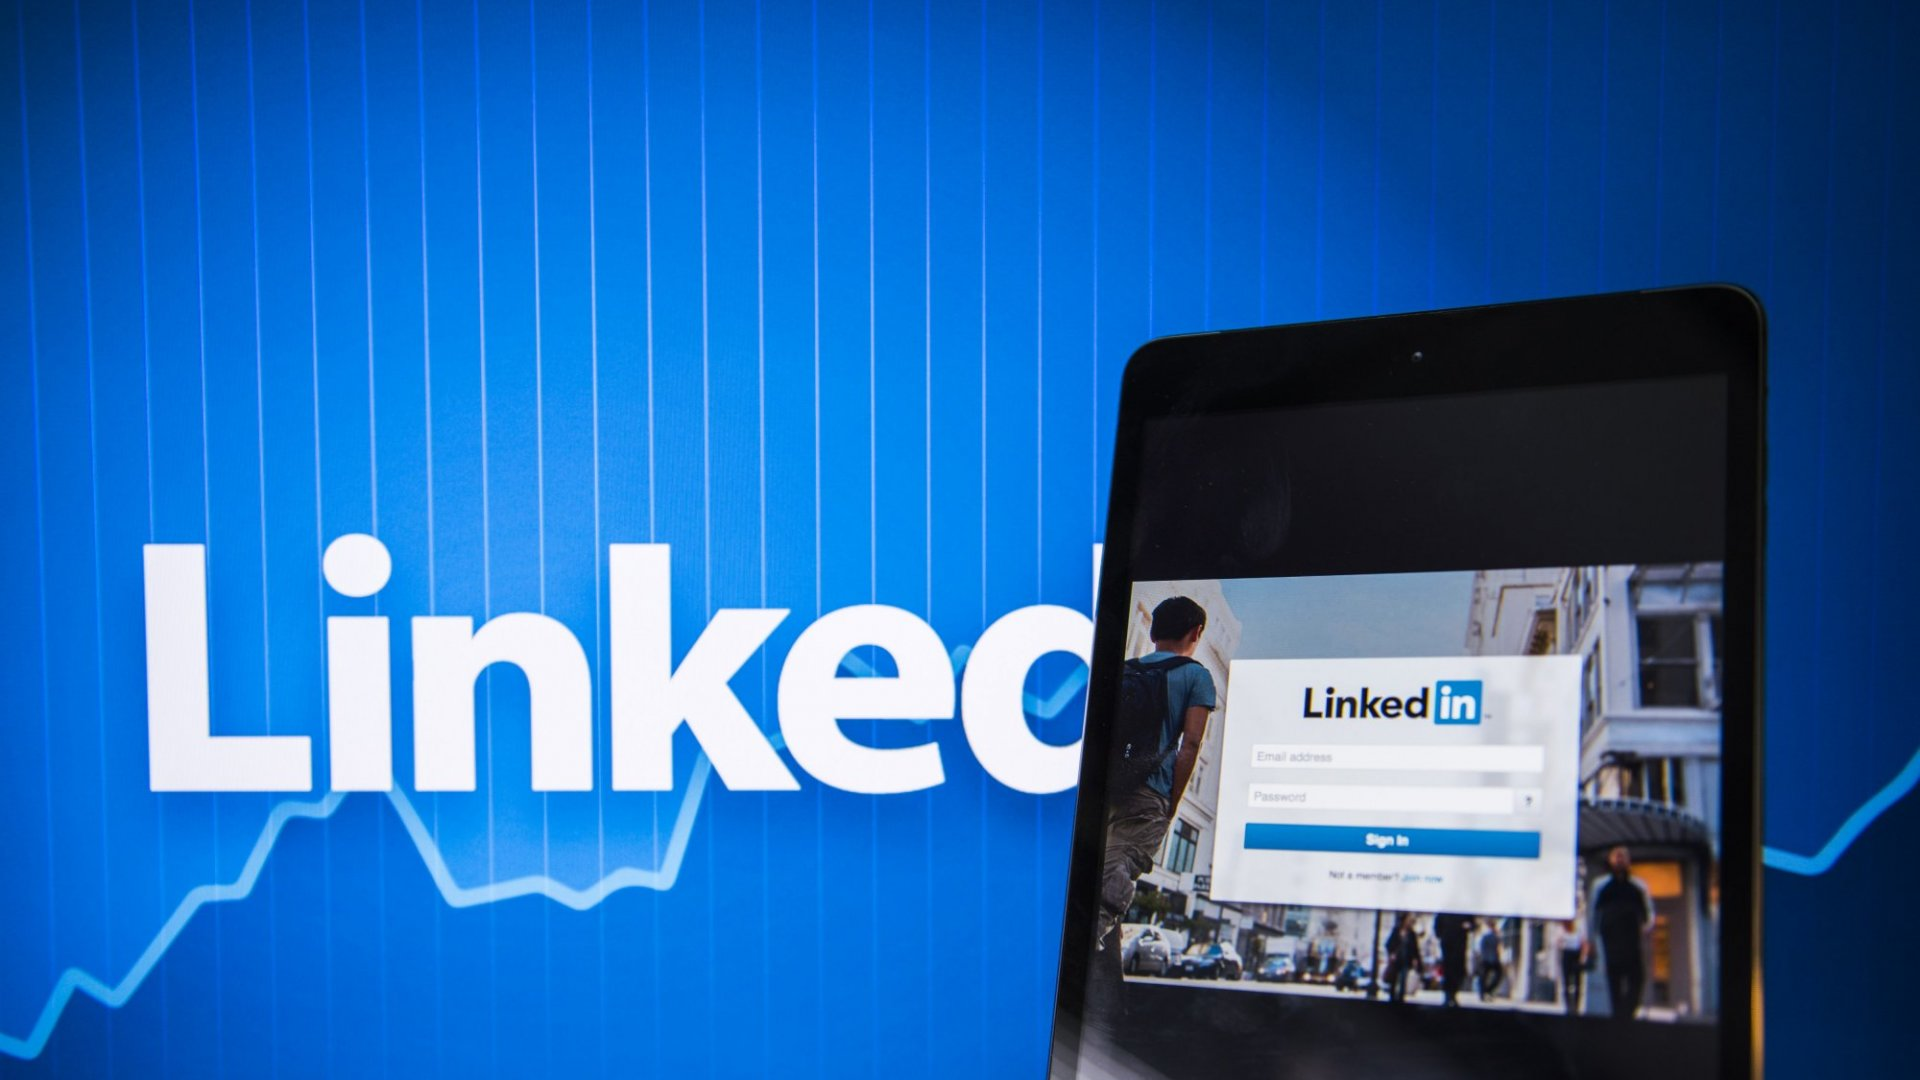 3 Ways to Make Your LinkedIn Profile Stand Out to Recruiters